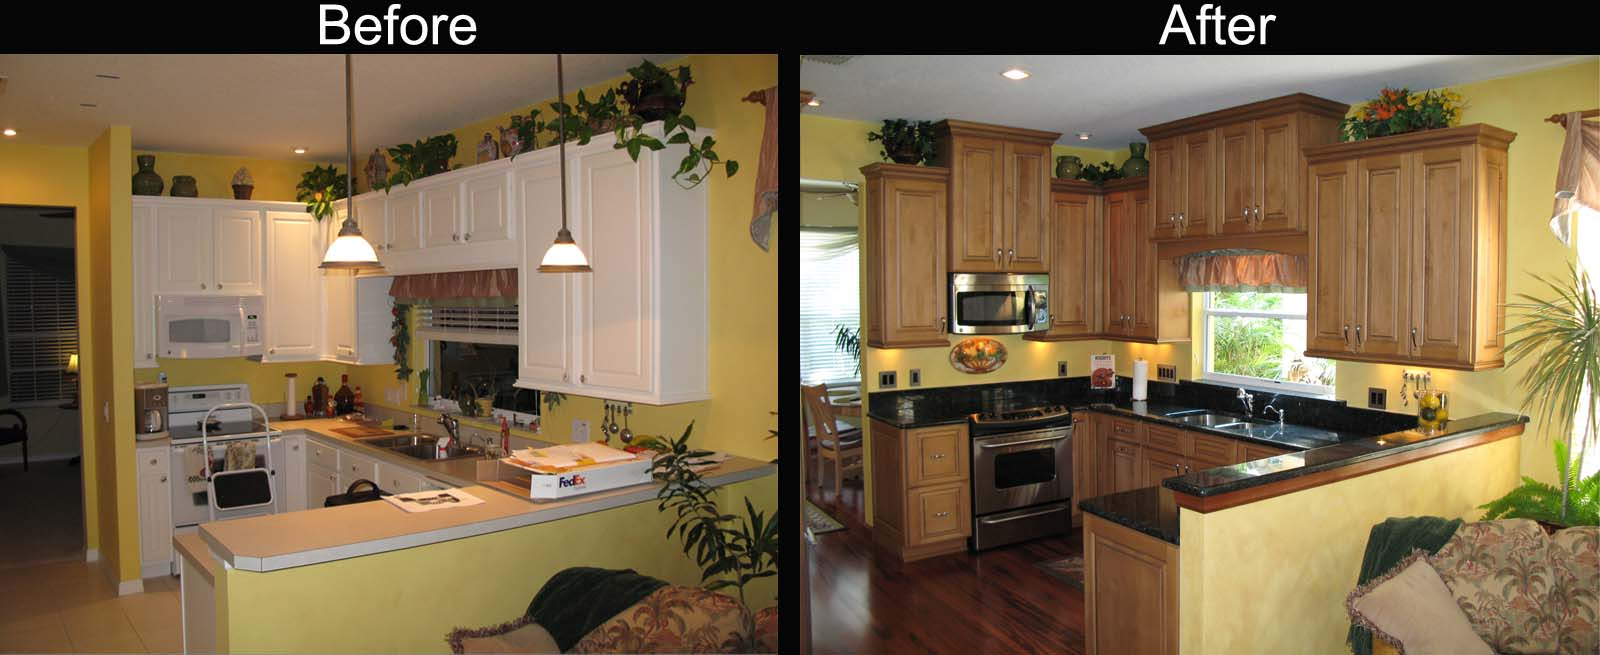 Kitchen decor kitchen remodel before and after for Renovation ideas for kitchen